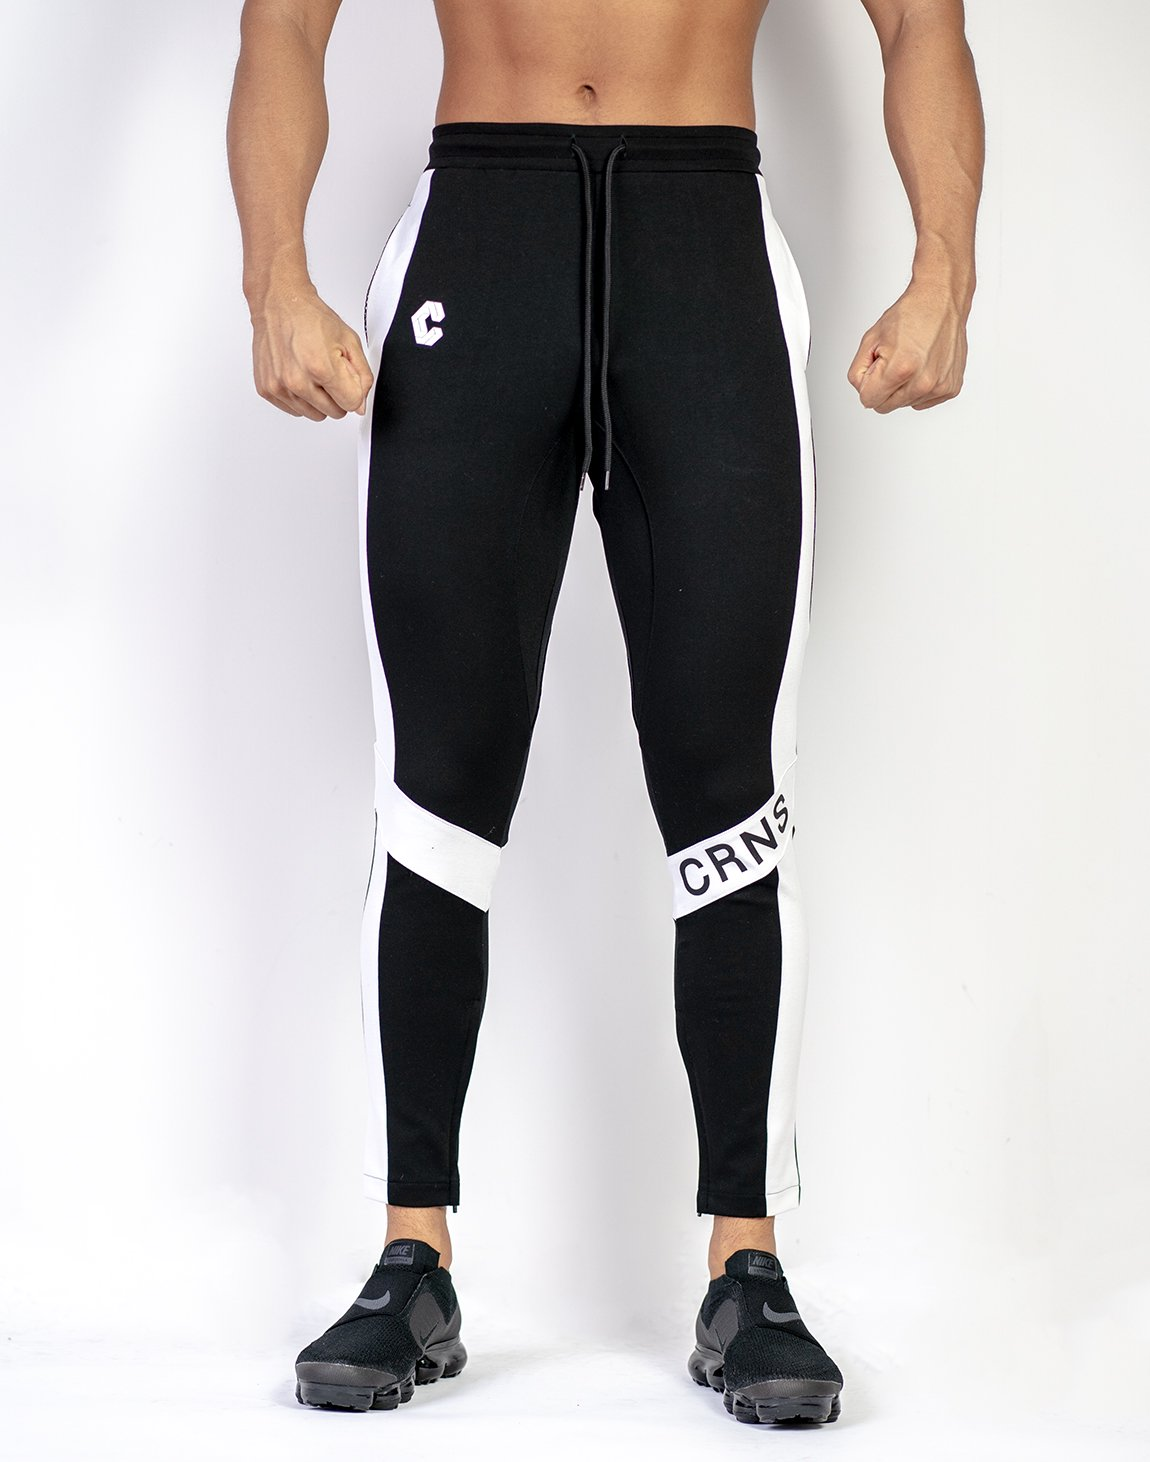 <img class='new_mark_img1' src='https://img.shop-pro.jp/img/new/icons1.gif' style='border:none;display:inline;margin:0px;padding:0px;width:auto;' />CRNS KNEE LOGO PANTS 【BLACK】Restock.Ver